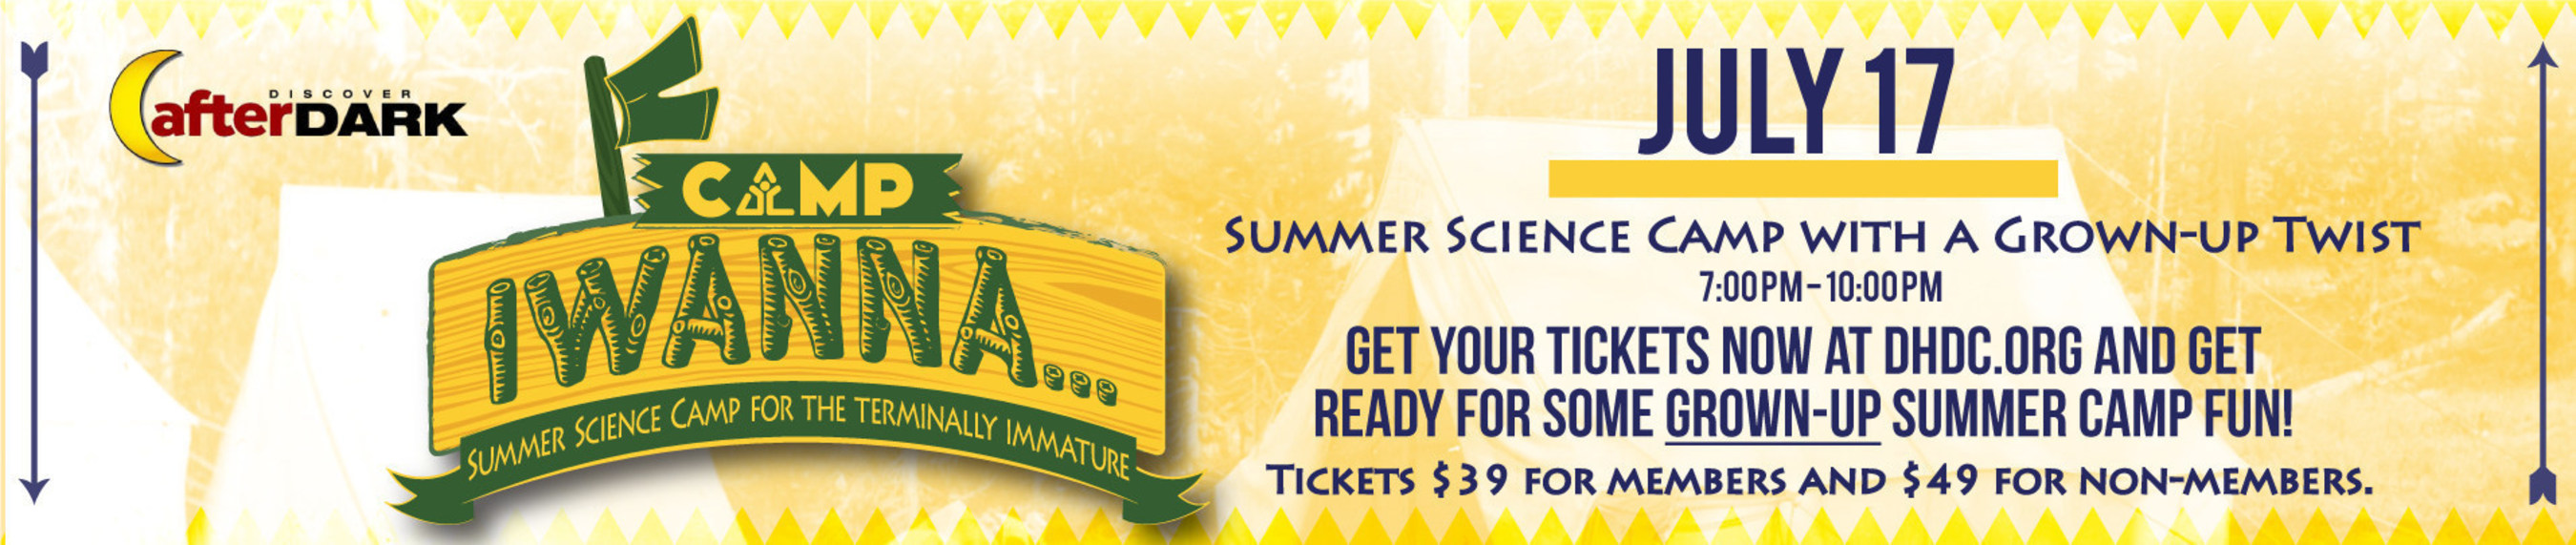 Discovery Center Combines Summer Camp and Science for Adults at Next After Dark Event